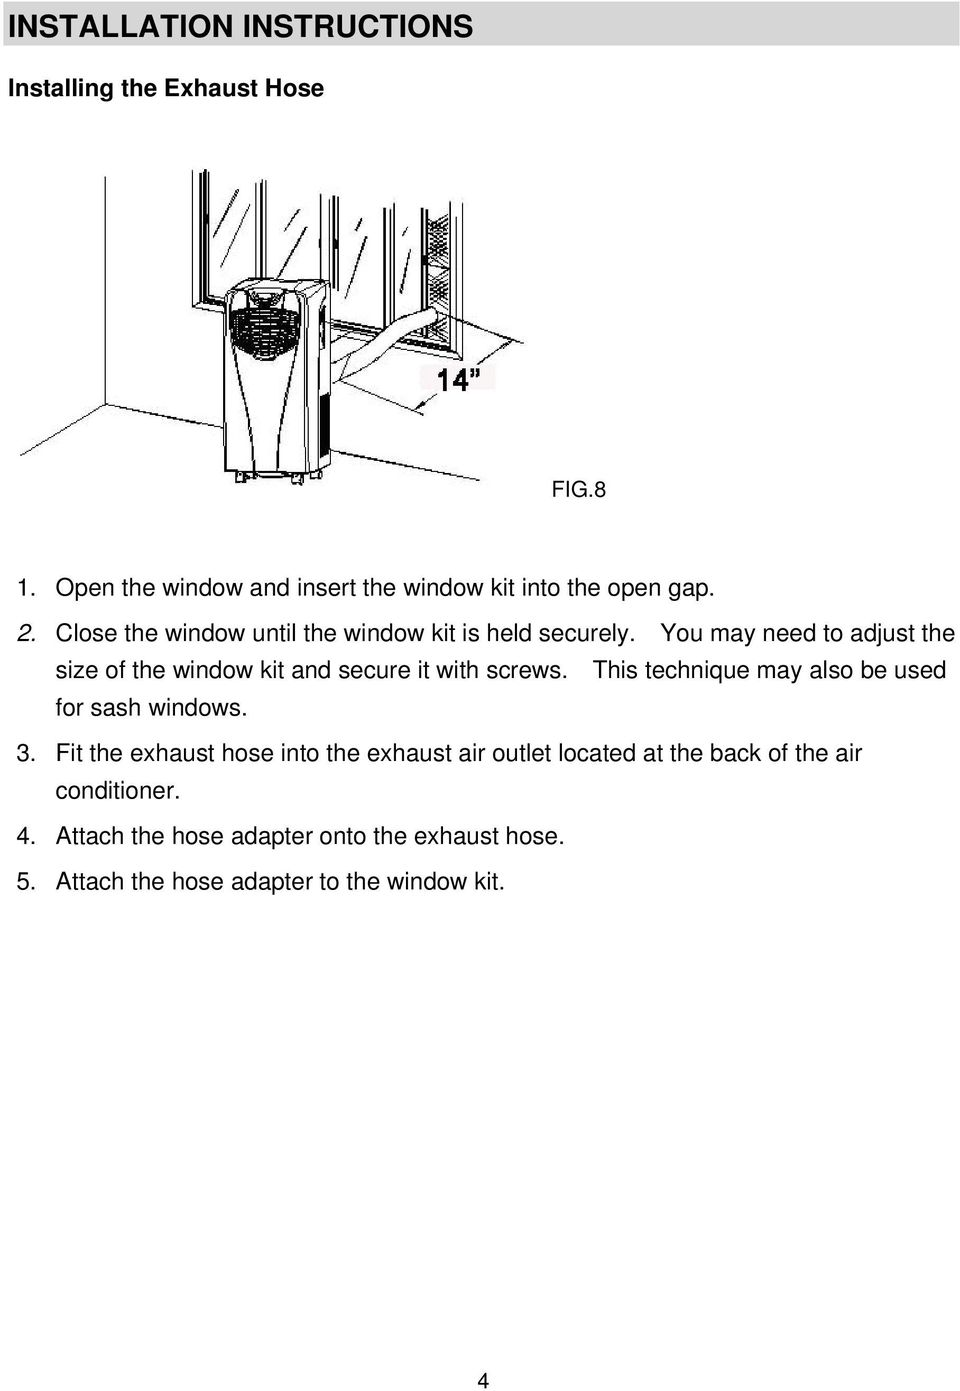 You may need to adjust the size of the window kit and secure it with screws. This technique may also be used for sash windows.